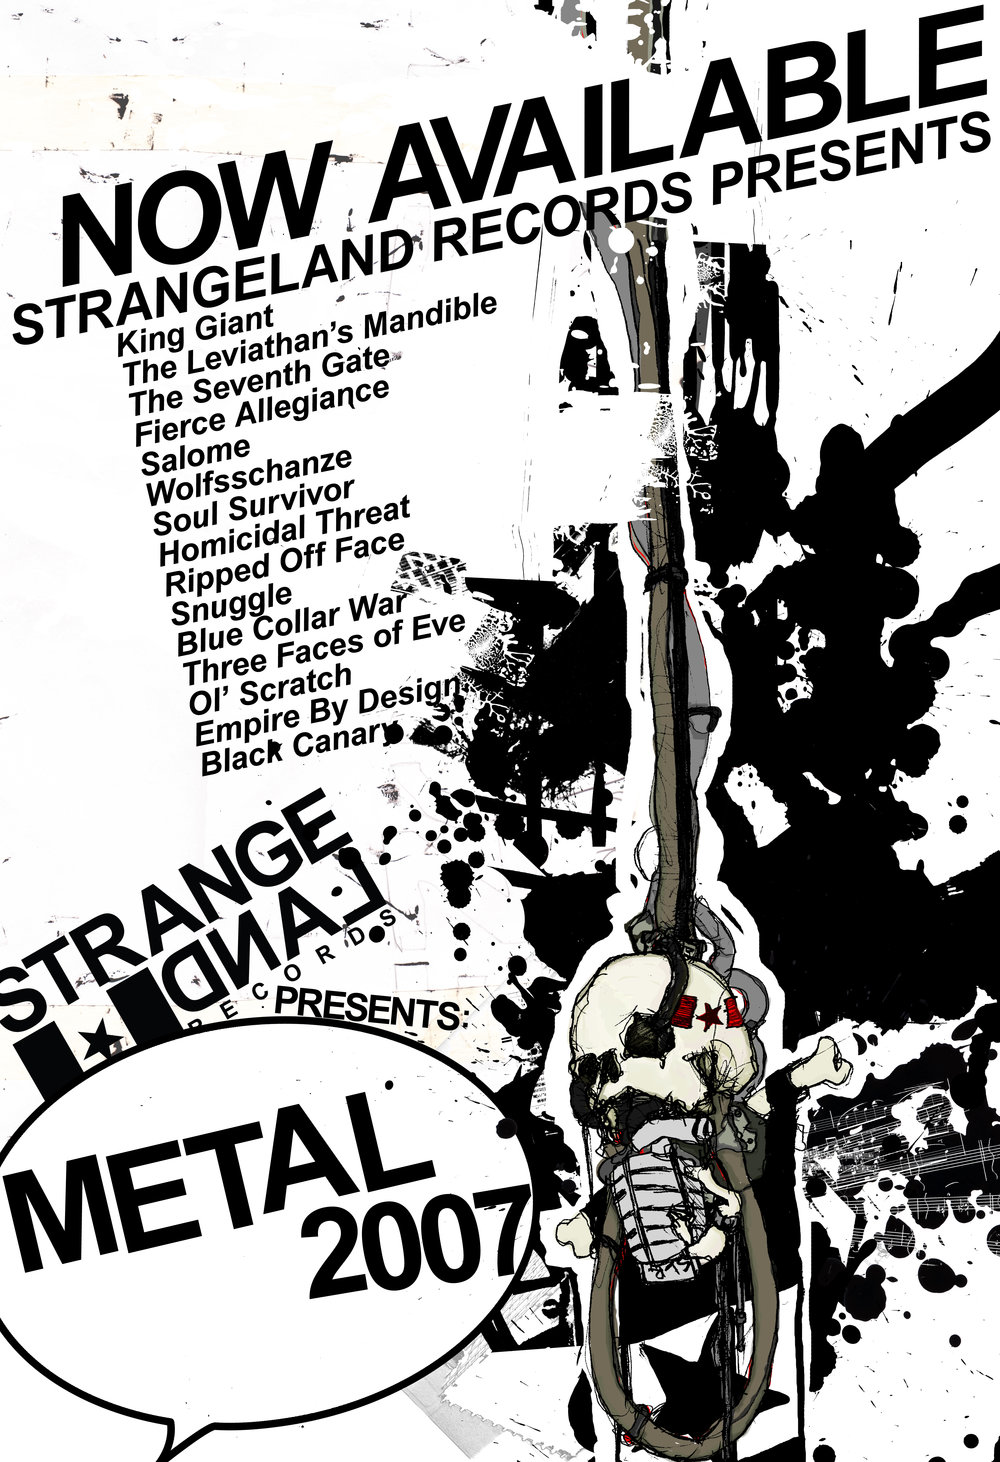 SLR_2007_metal_withbands.jpg